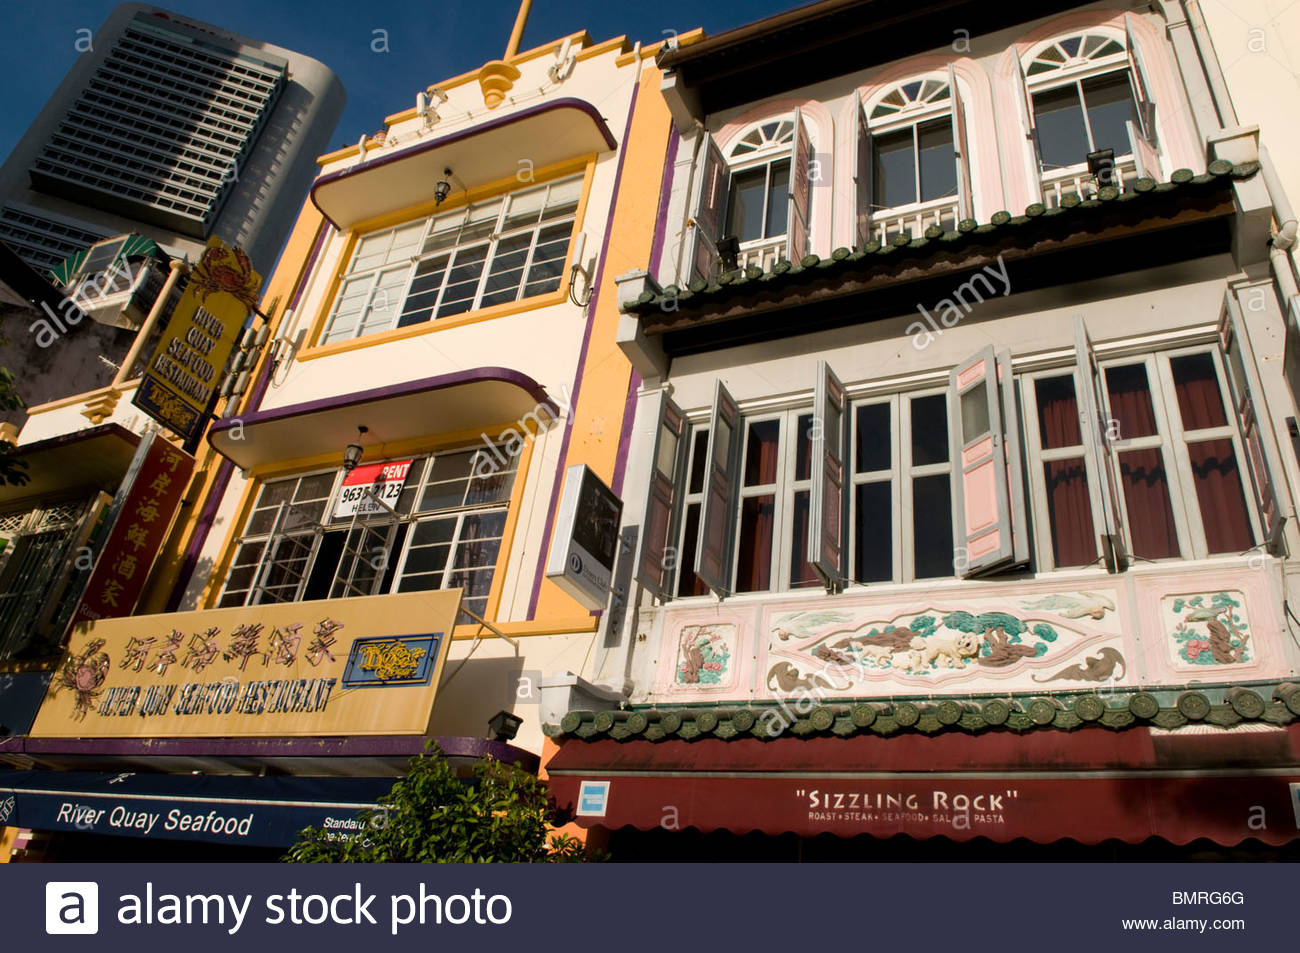 Restaurants at Boat Quay Singapore - Stock Image